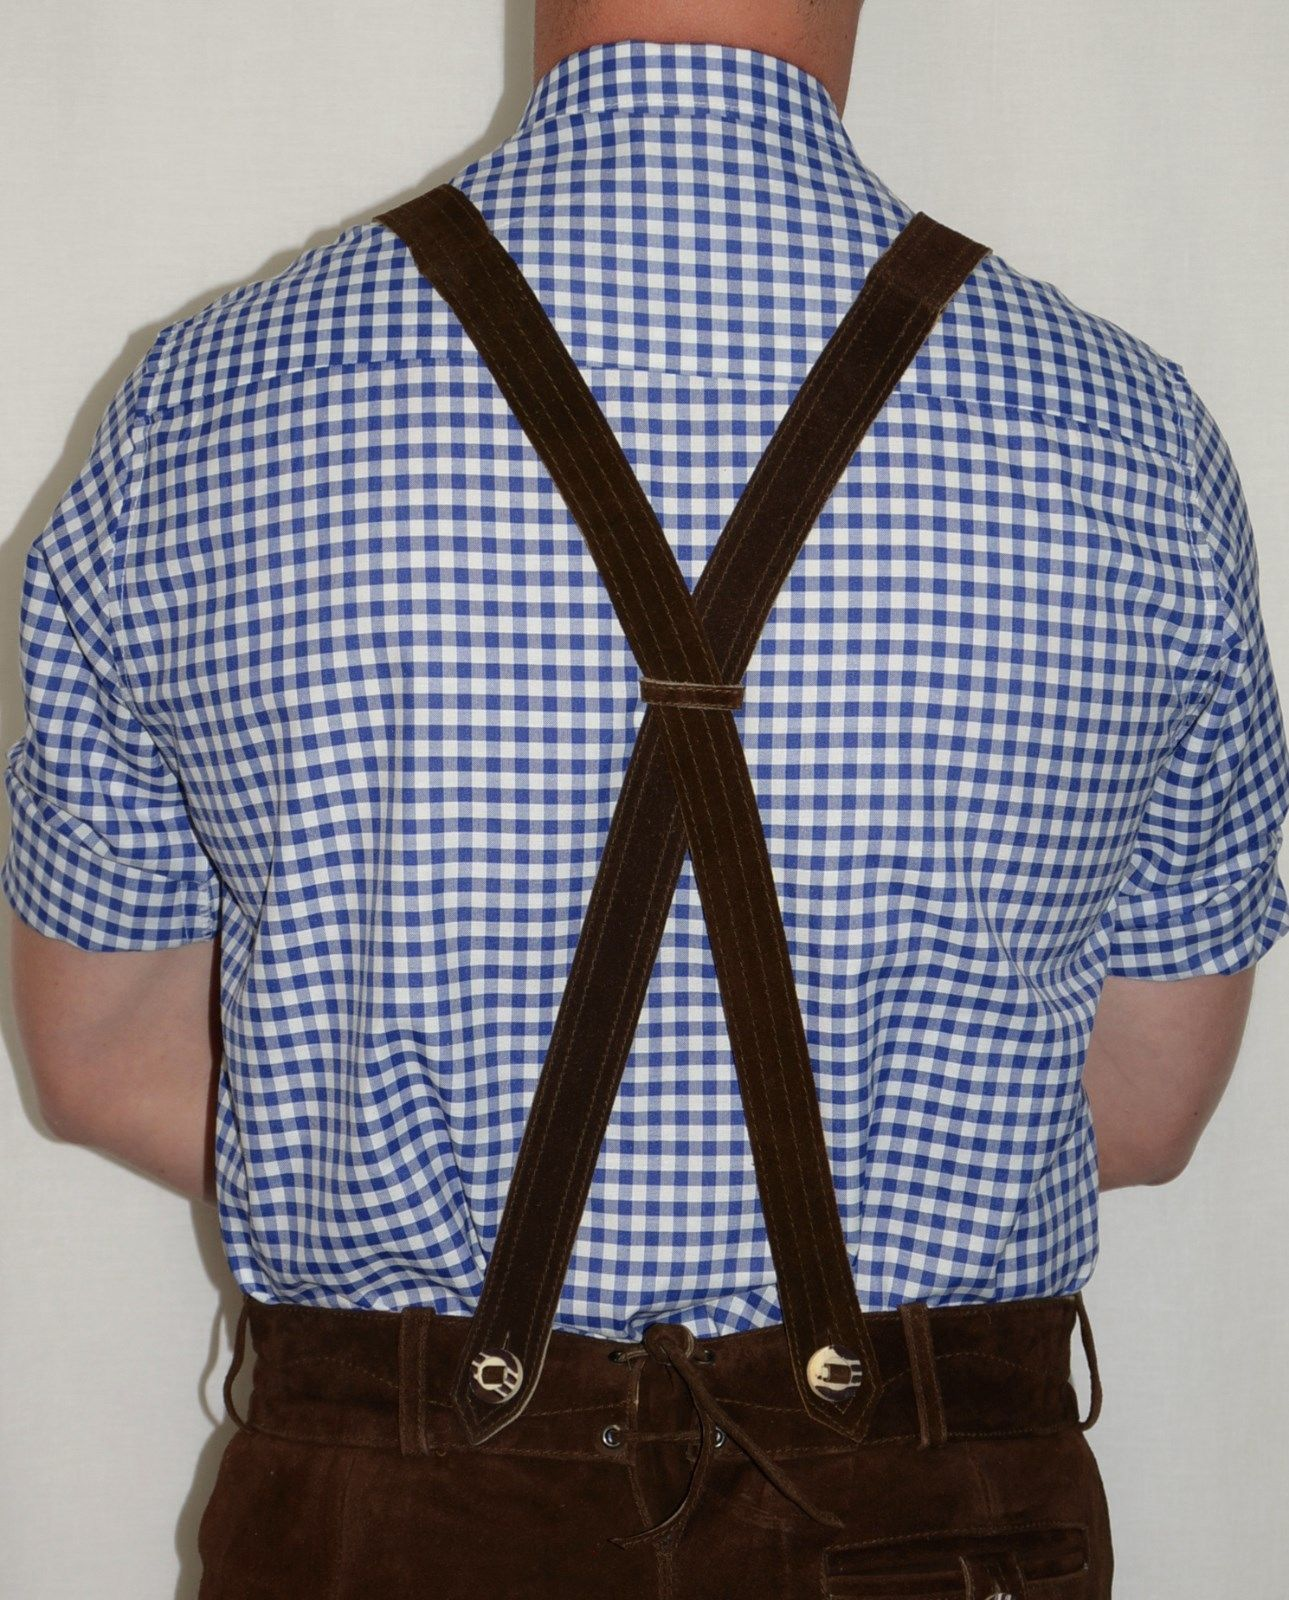 SUSPENDERS-LEATHER-German-Lederhosen-Shorts-Pants-Oktoberfest-Trachten-BRAIDED thumbnail 6